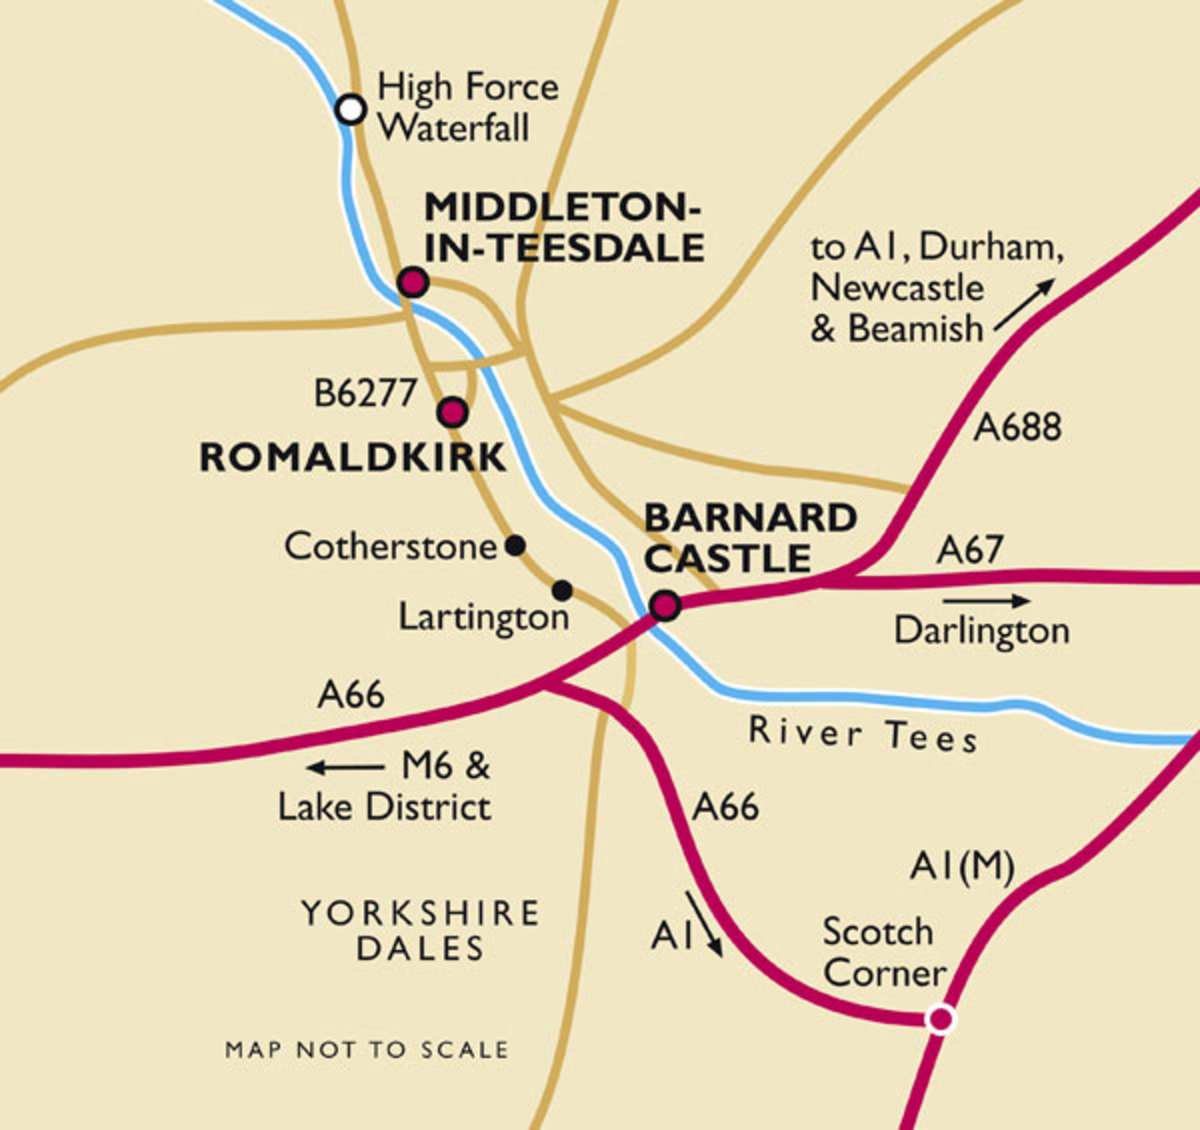 Road routes between the A1 and Middleton-in-Teesdale